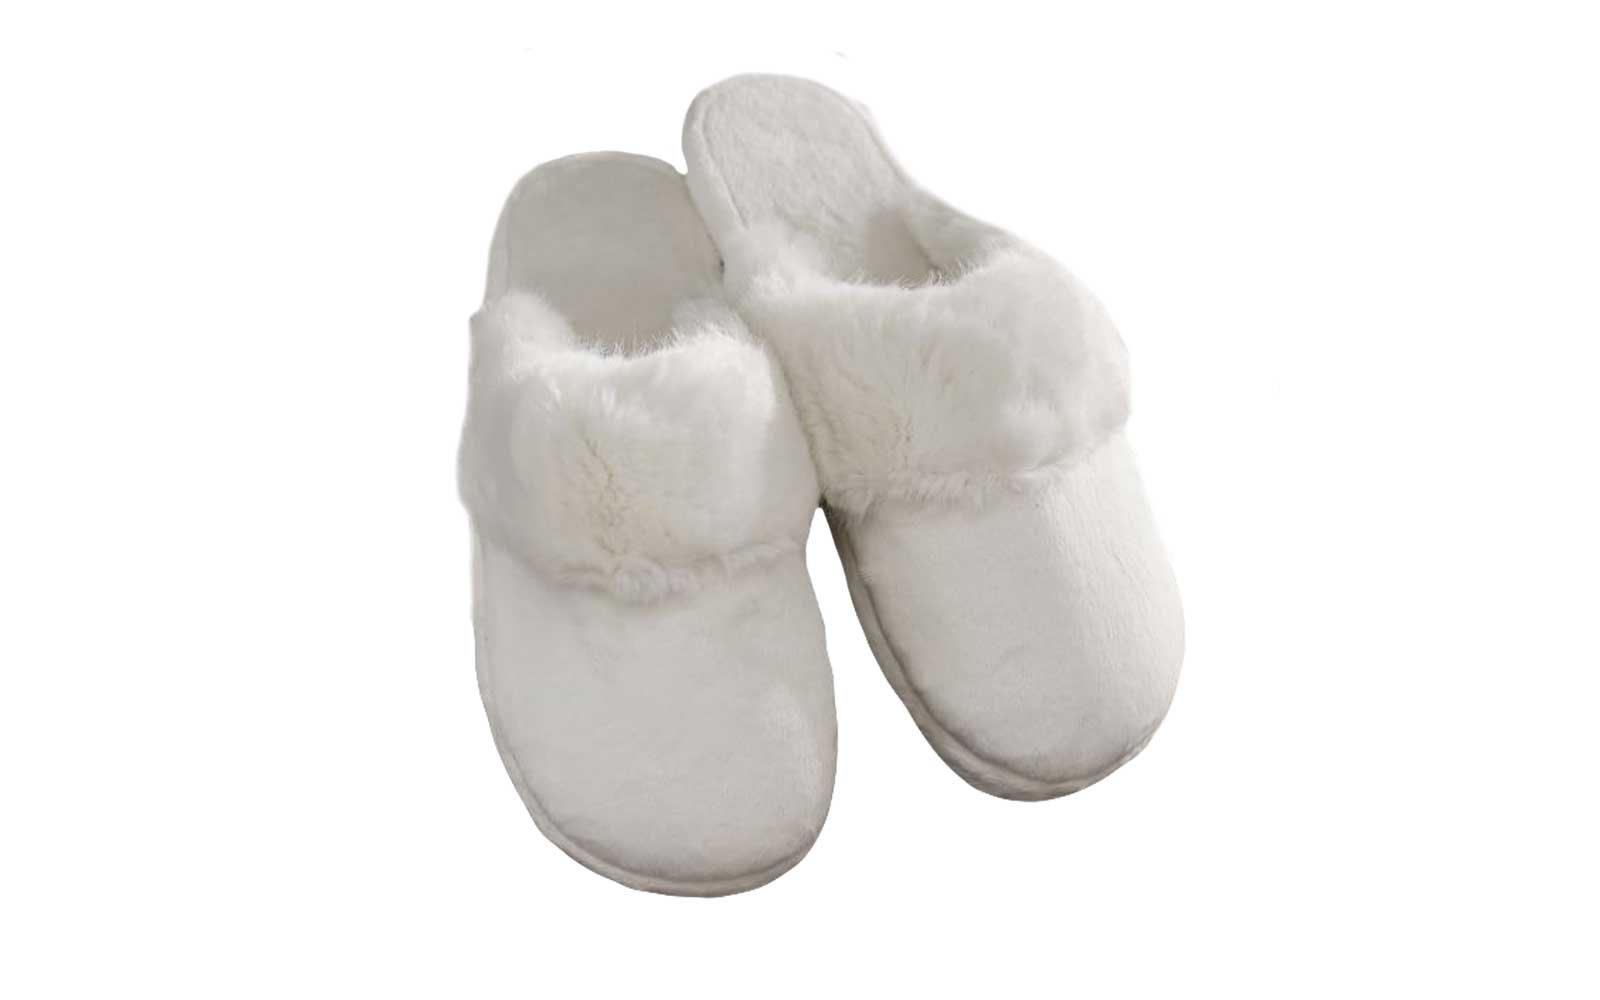 63b15de10d3 9 Super Cozy Slippers for Your Next Spa Night